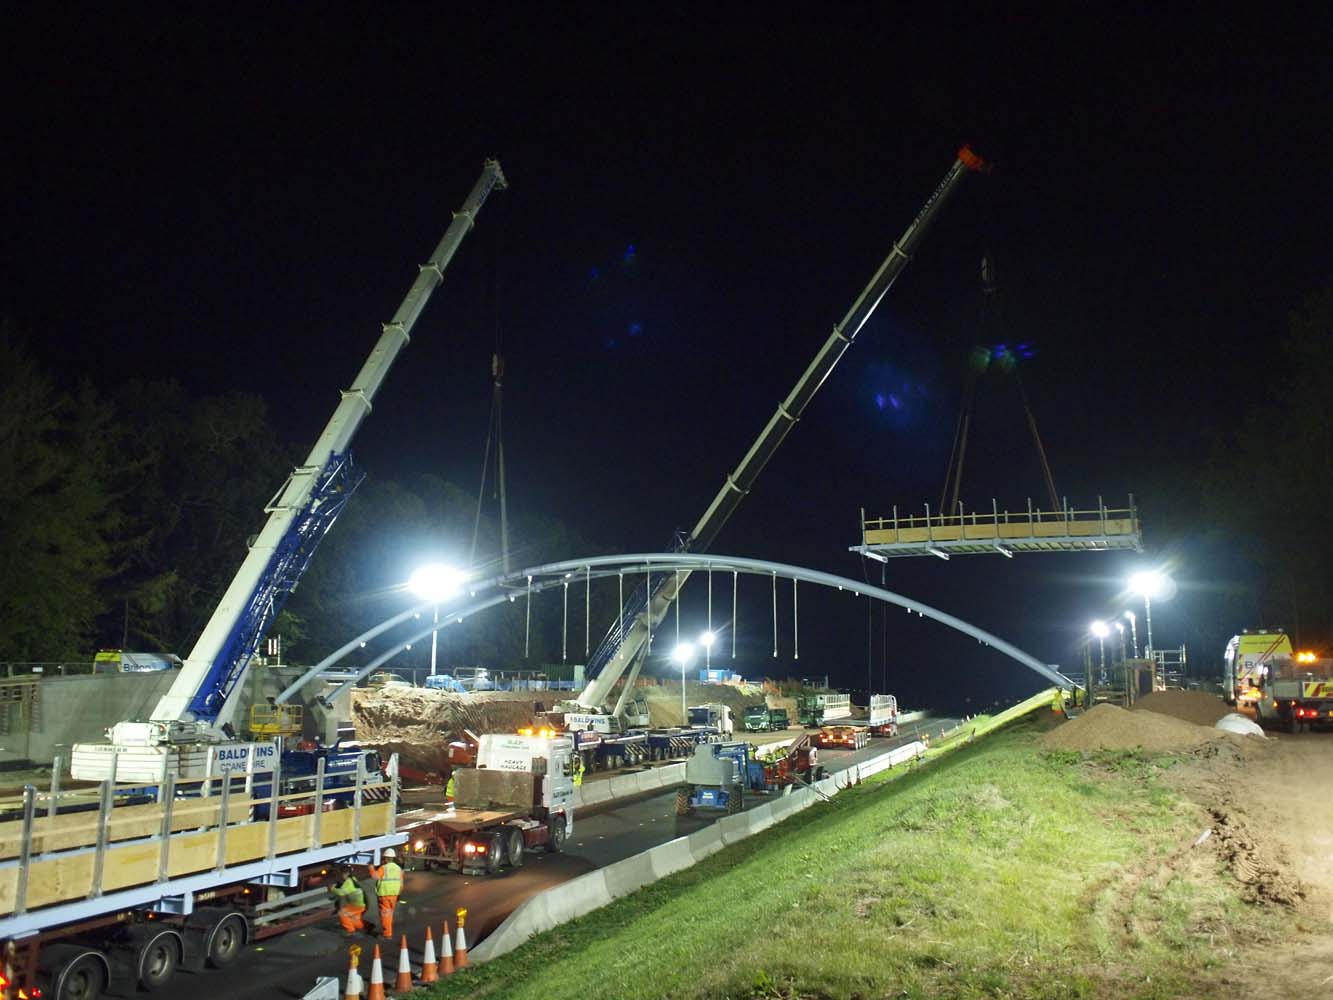 A46 Duelling for Balfour Beatty